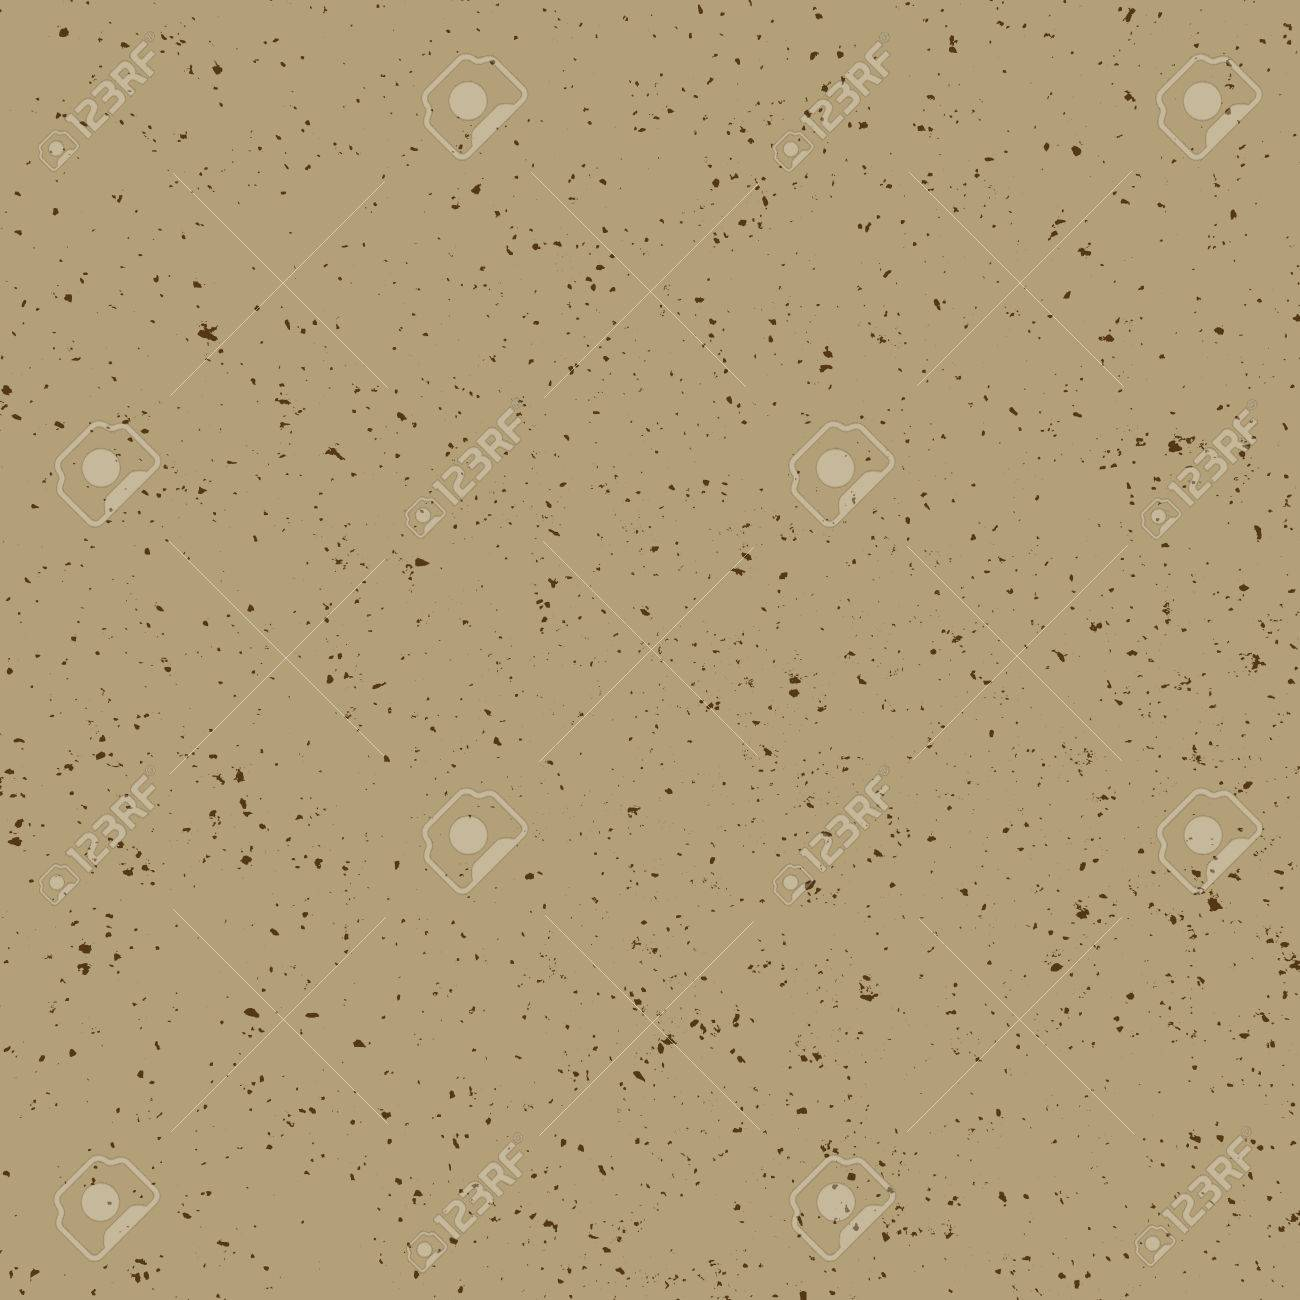 Grainy Paper Texture for your design  EPS10 vector